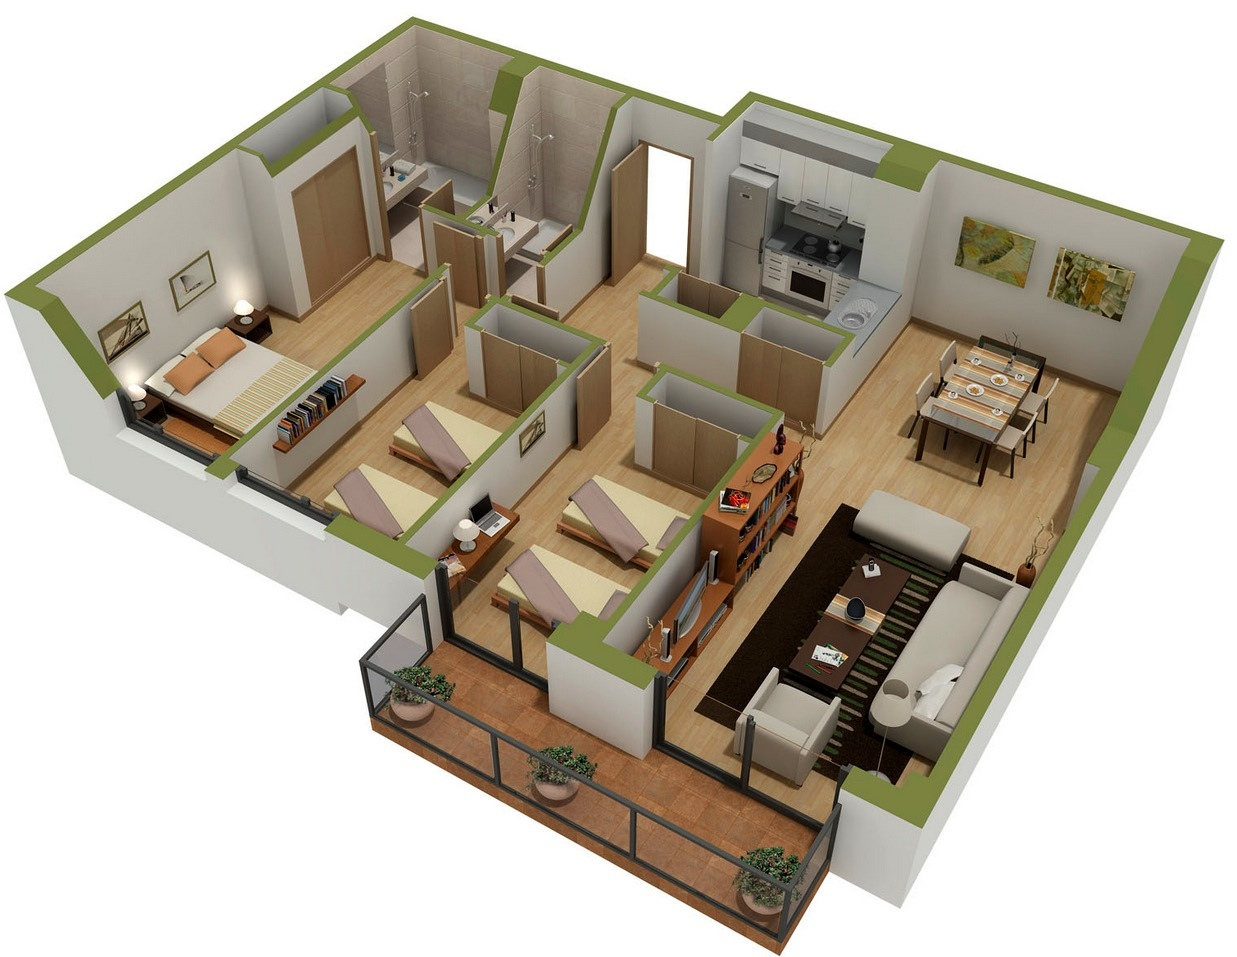 Denah Rumah 6x12 Family-vacation-house-layout | Interior Design Ideas.